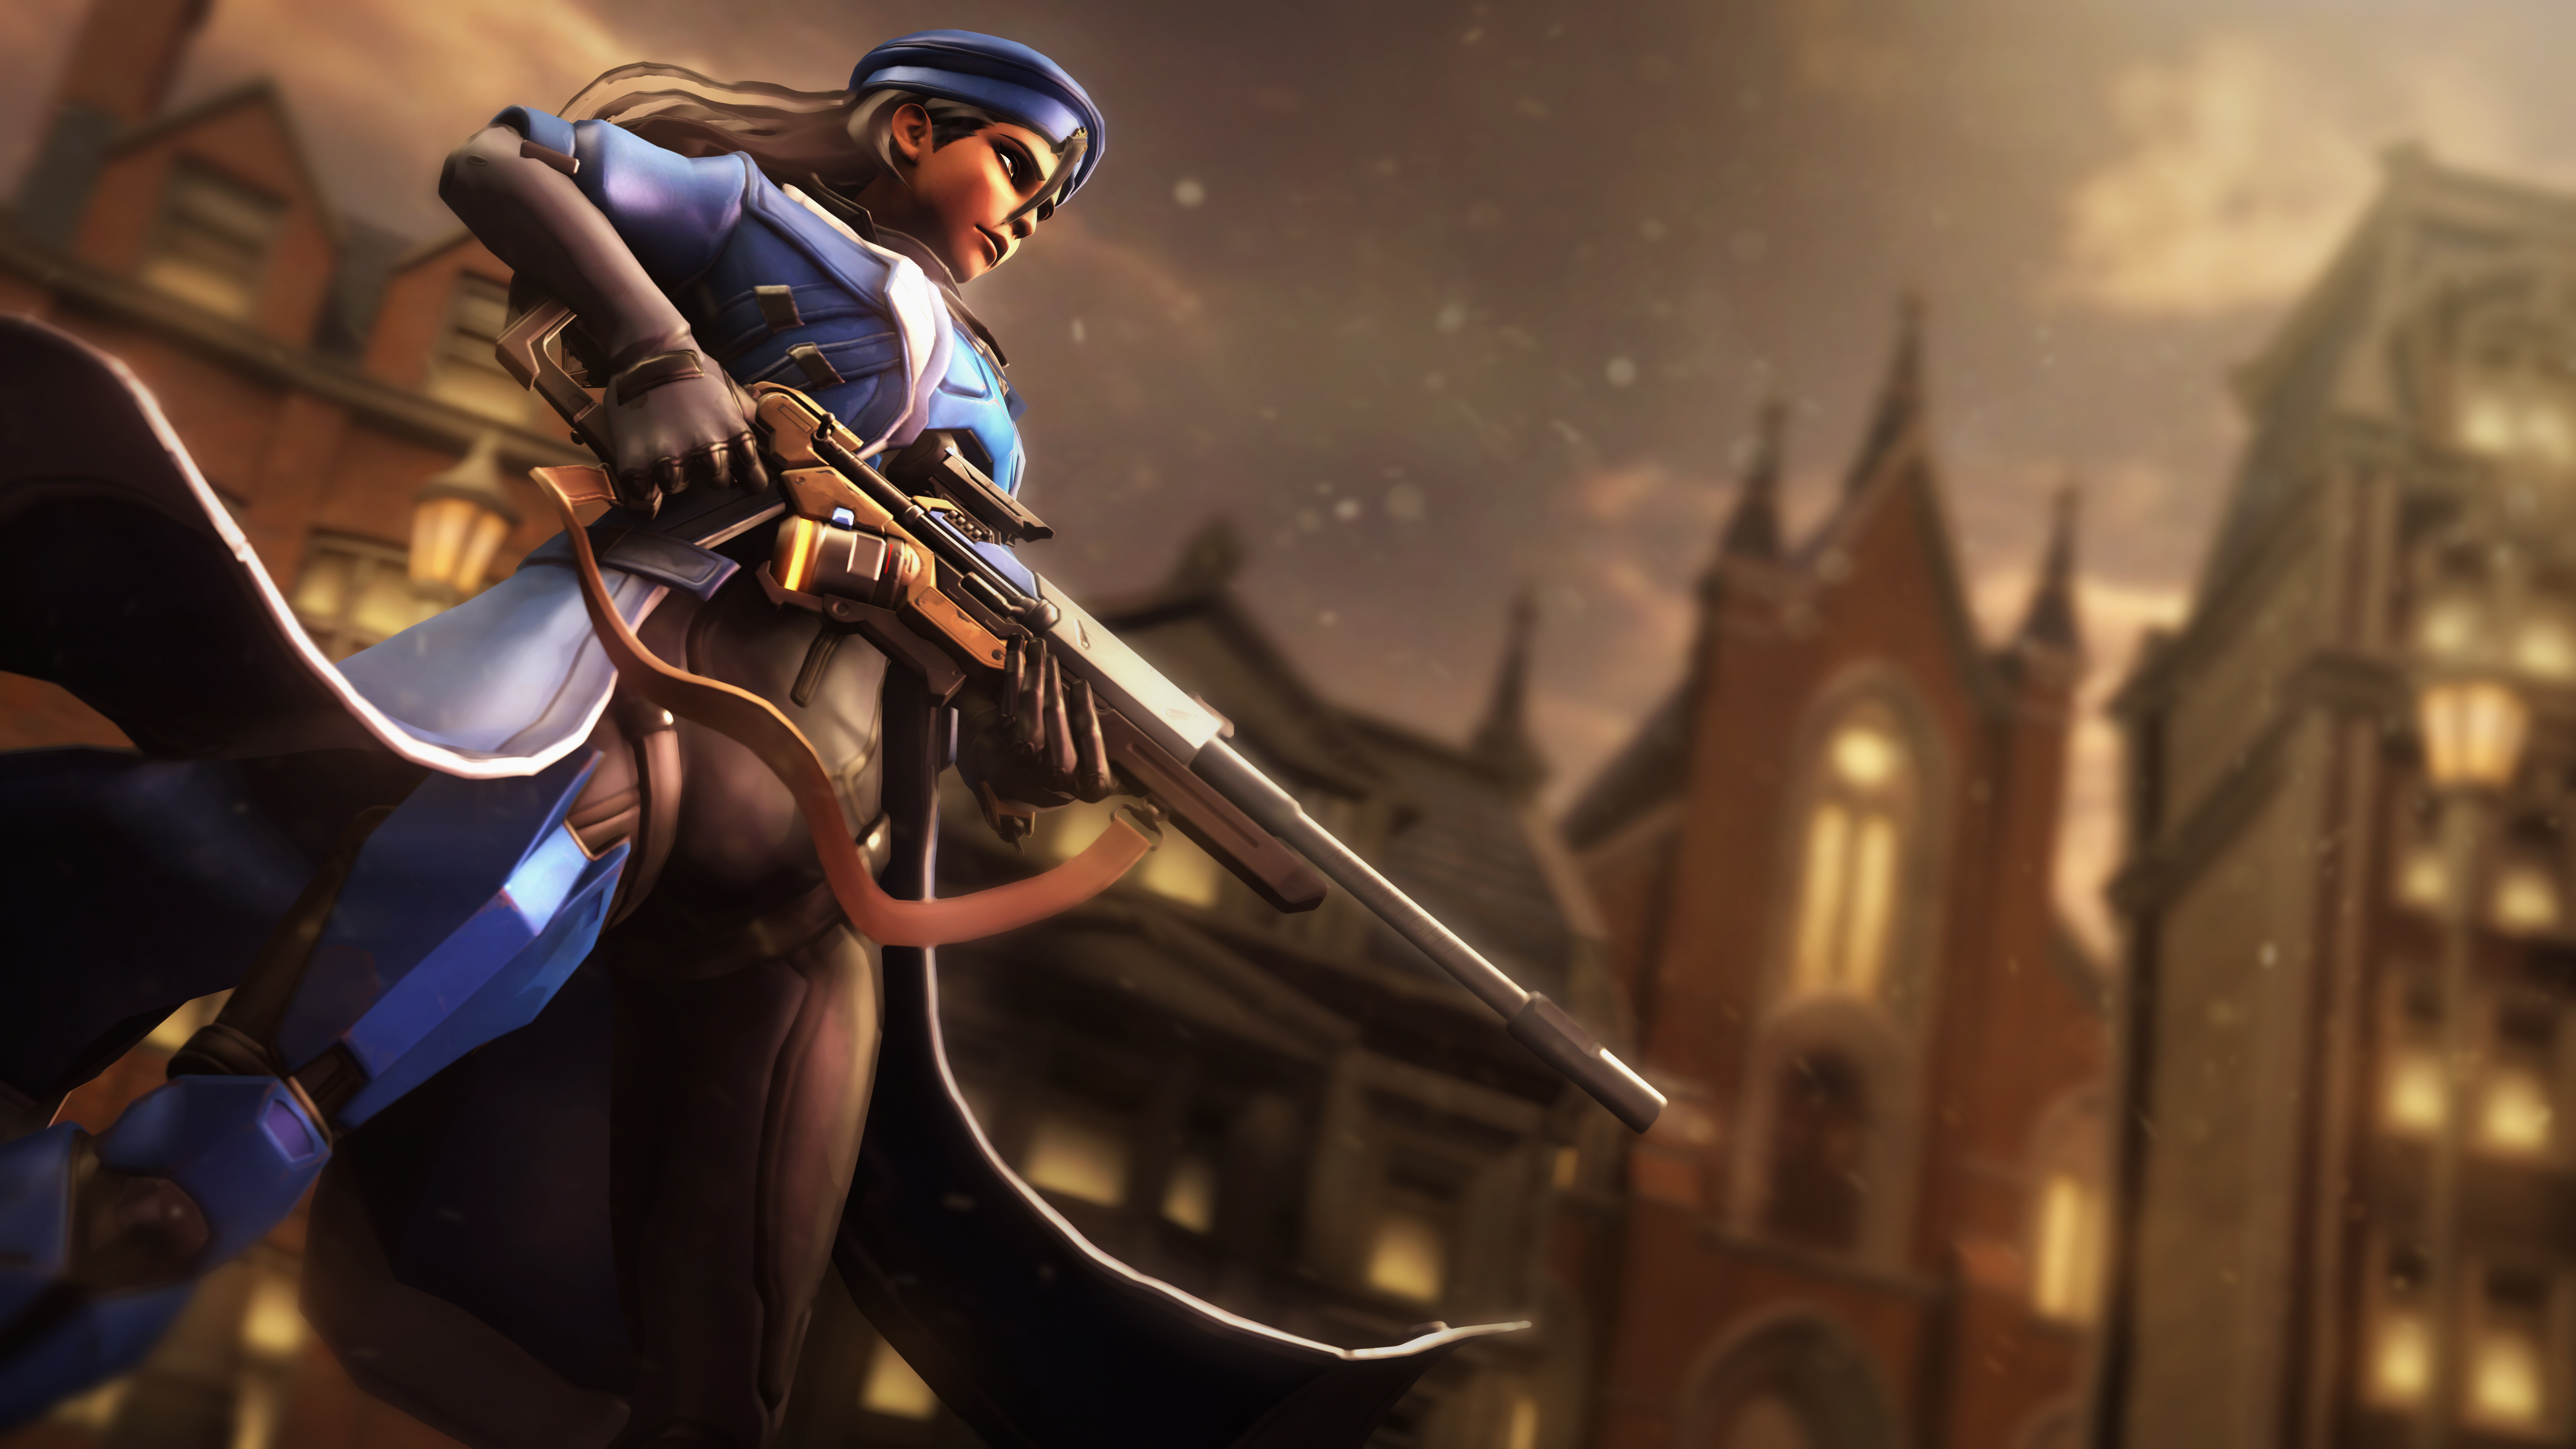 1600x900 Ana Overwatch 5k 1600x900 Resolution Hd 4k Wallpapers Images Backgrounds Photos And Pictures